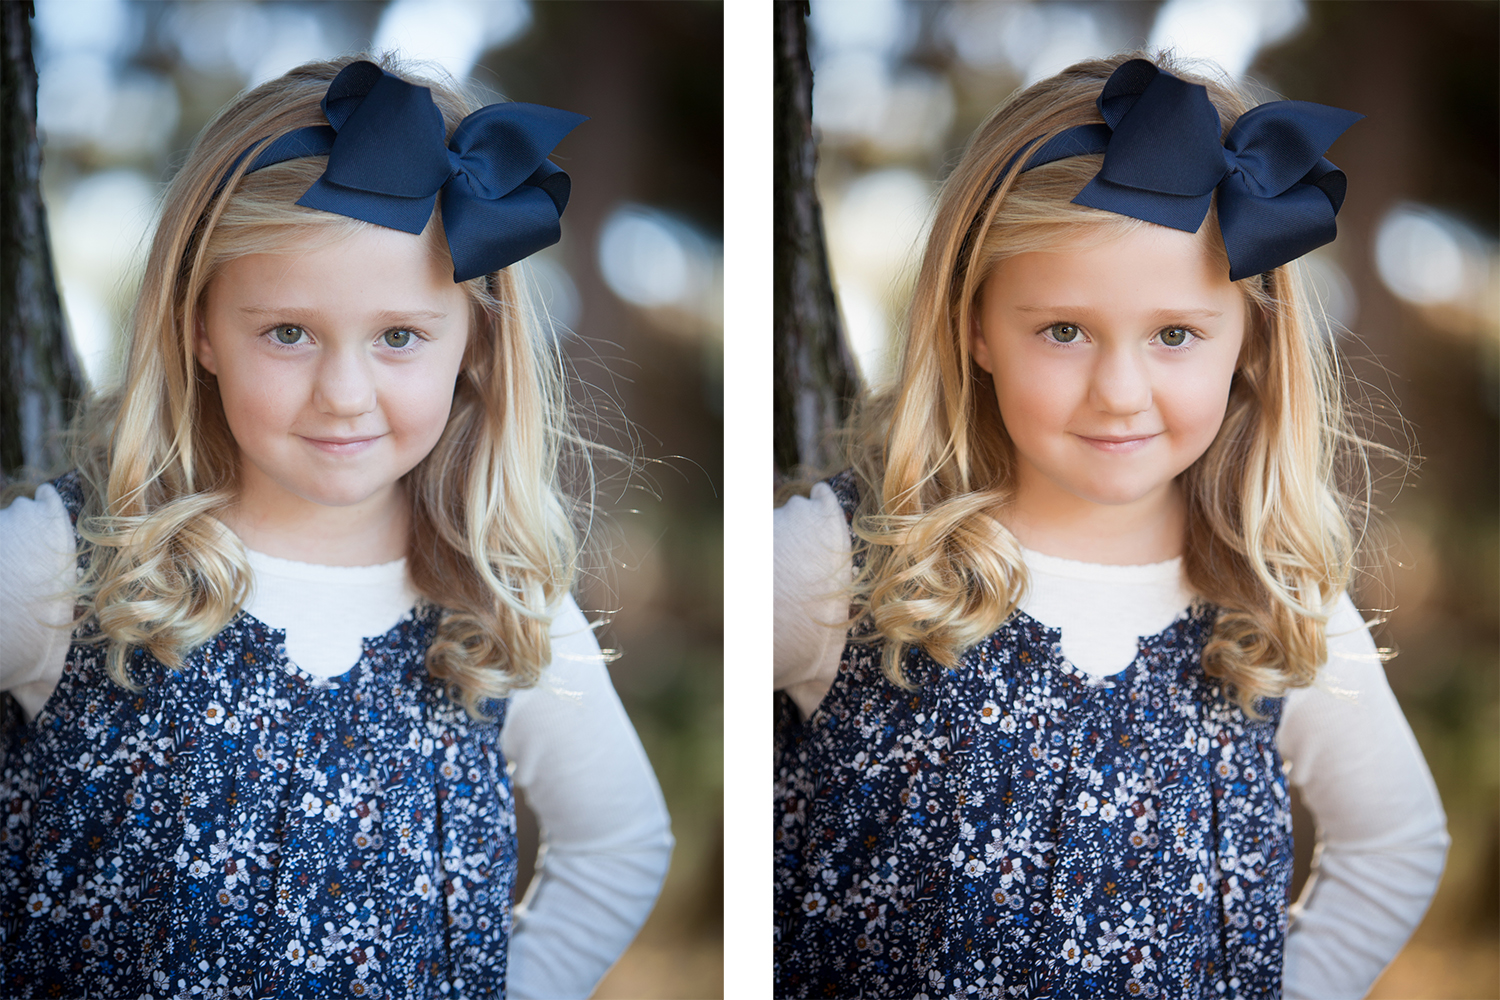 val-westover-photography-professional-retouching-services